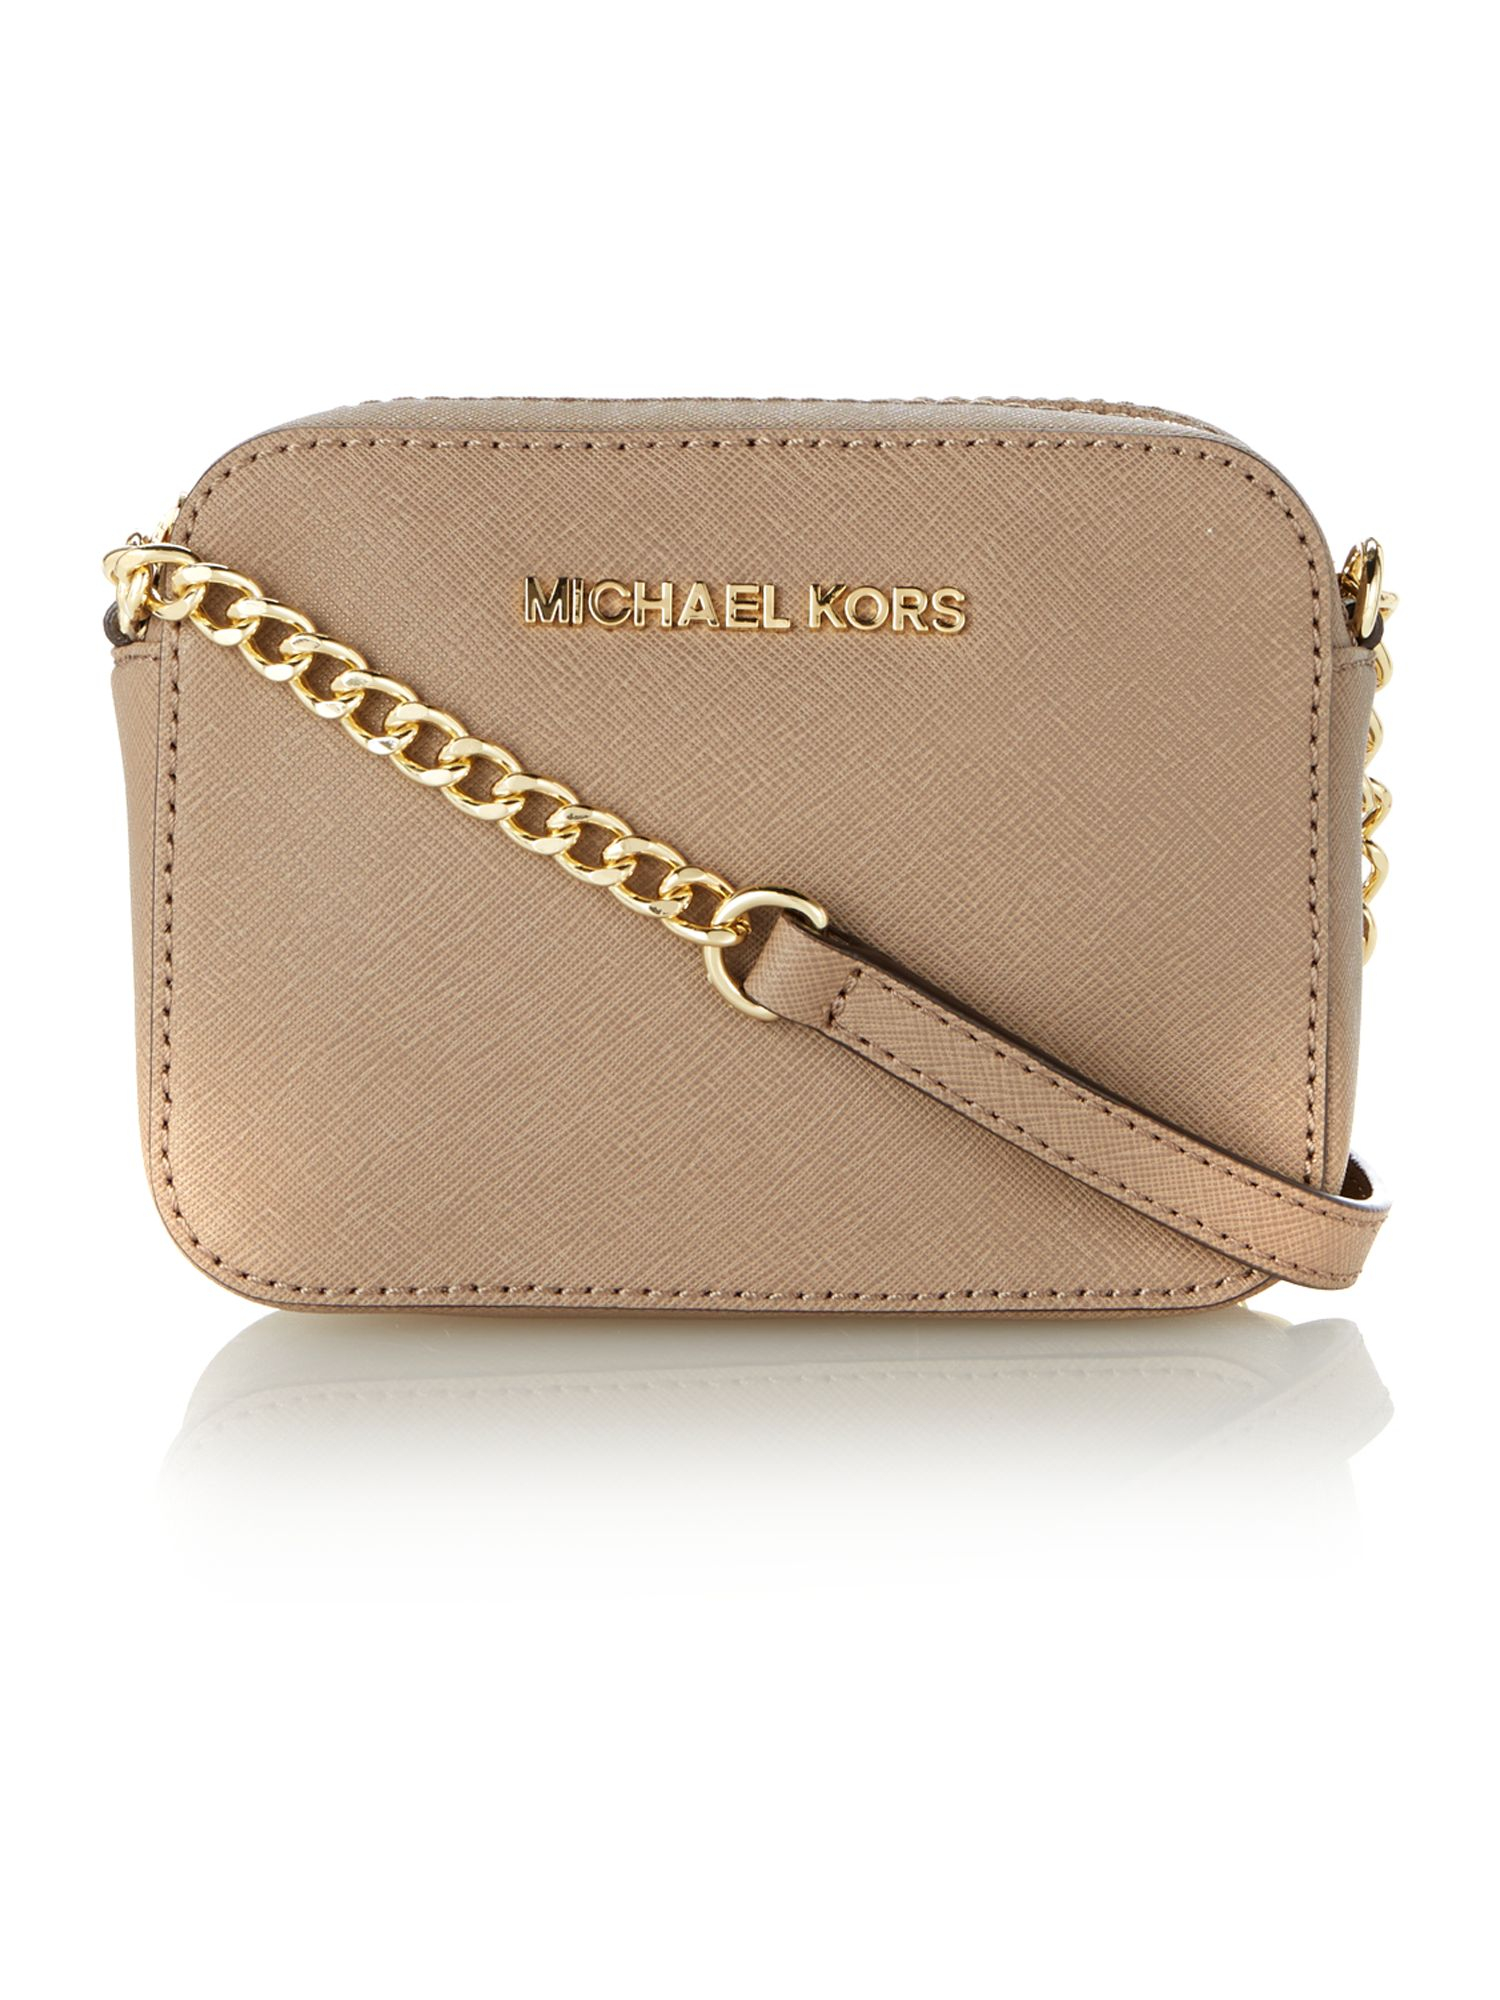 Michael Kors Jet Set Travel Sand Small Chain Cross Body Bag in Natural